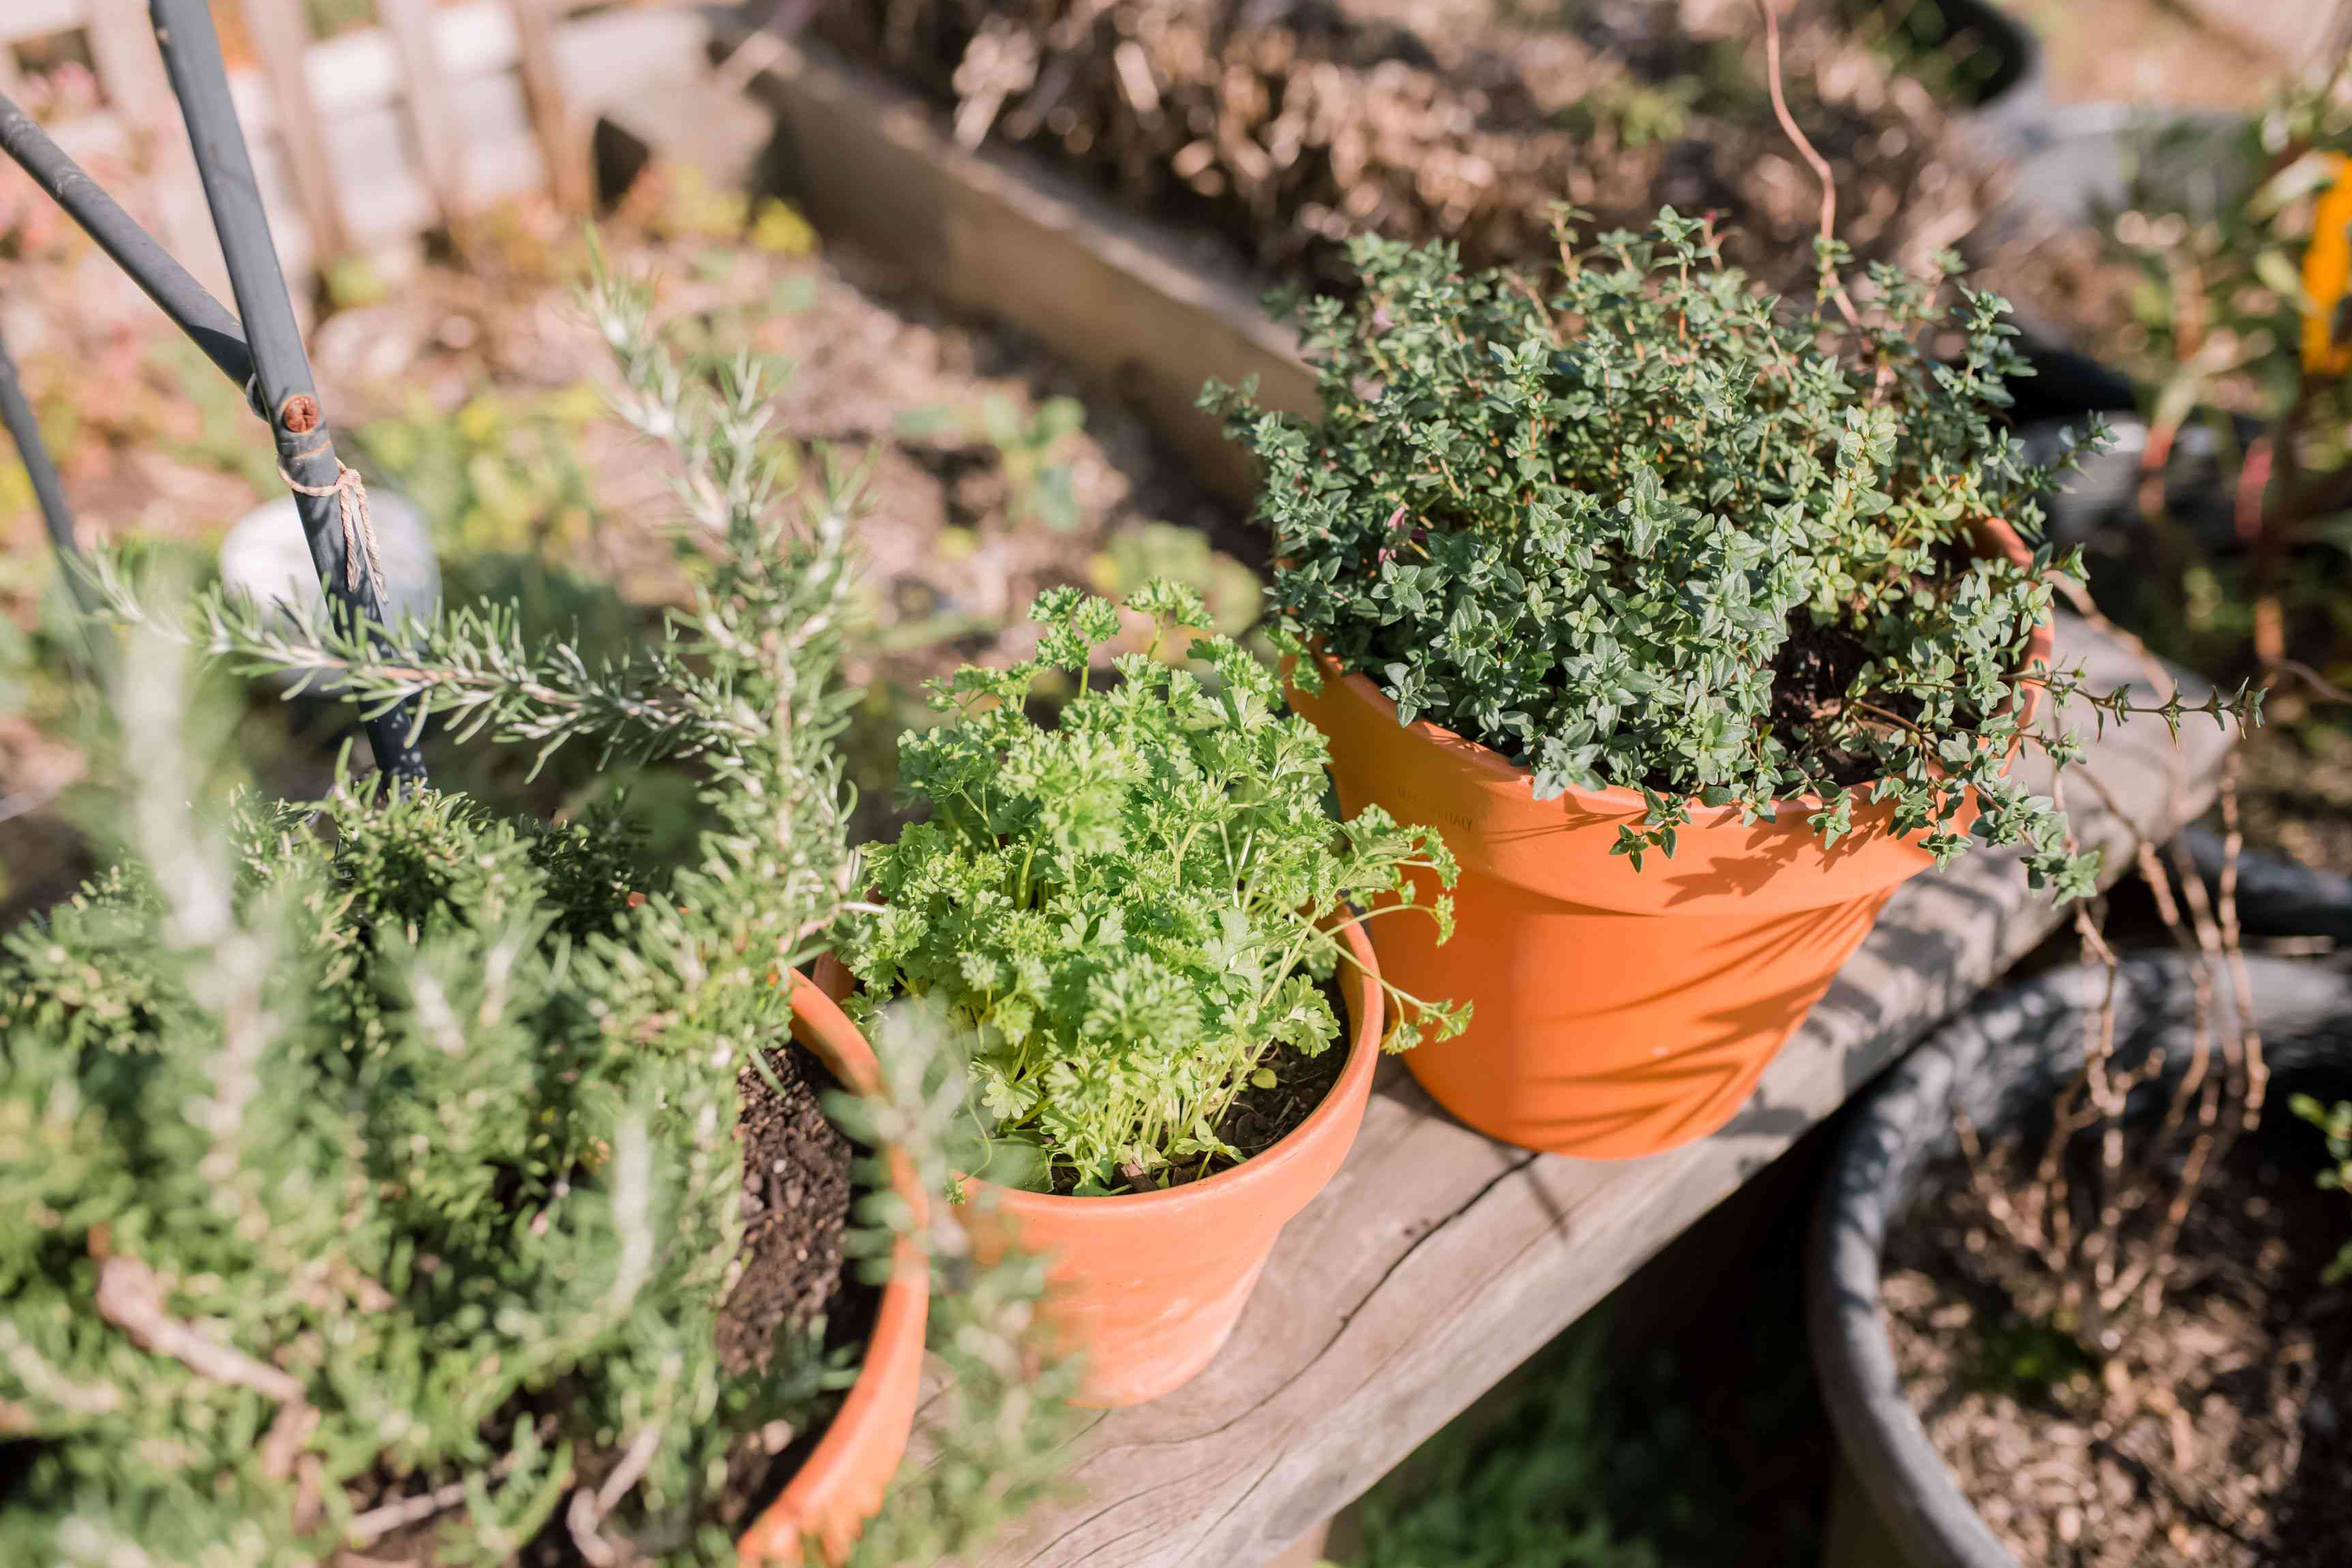 Rosemary, parsley and other herb plants growing in terracotta pots in sunlight